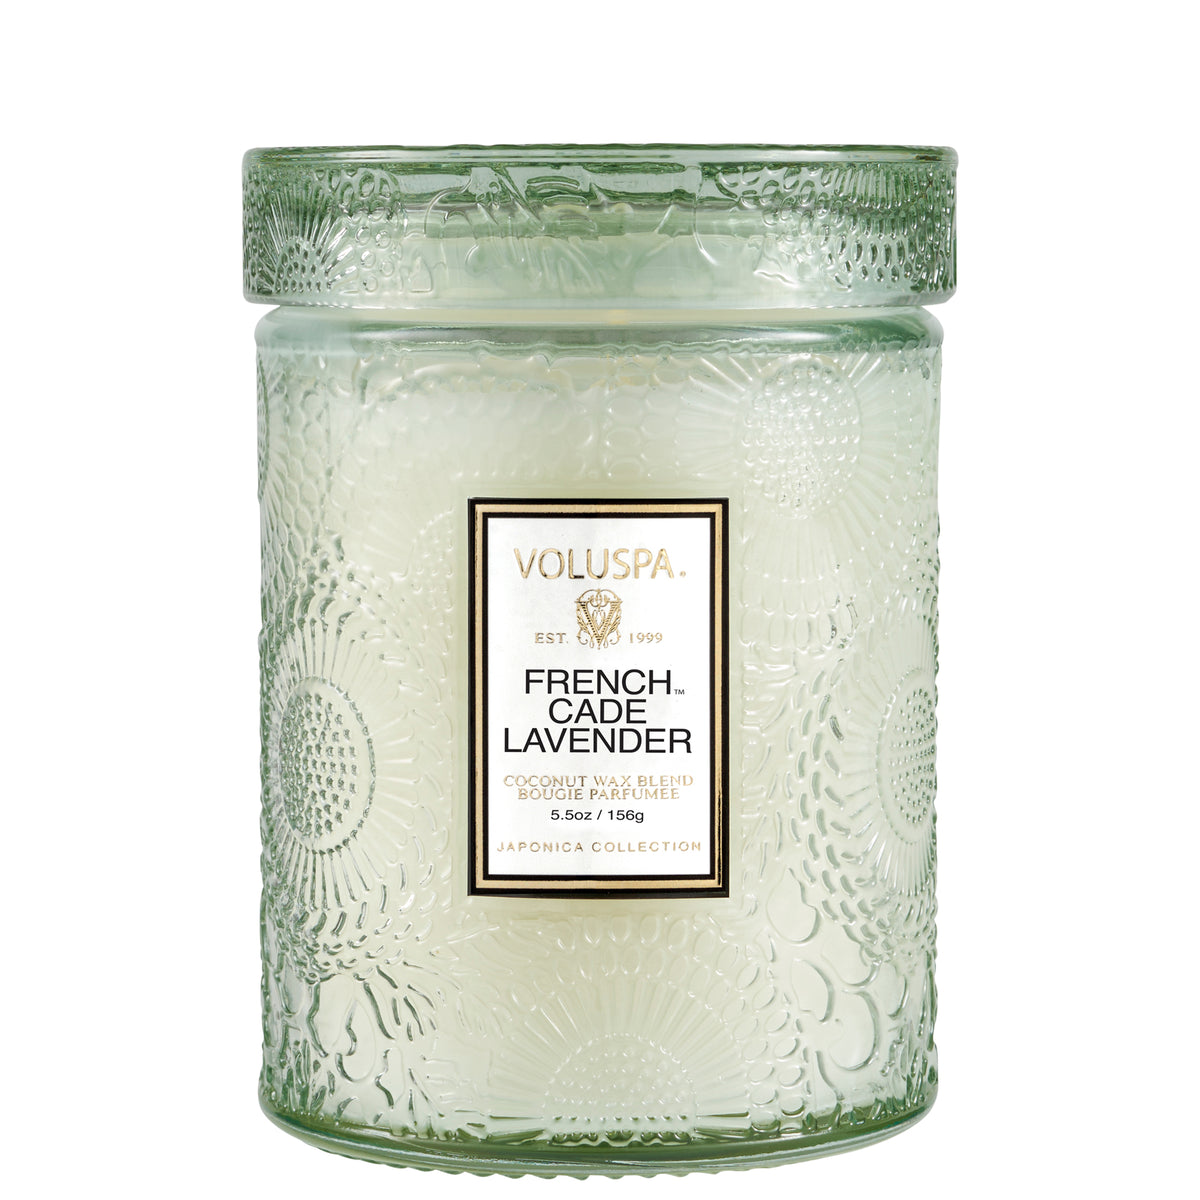 French Cade Lavender - Small Jar Candle - 1